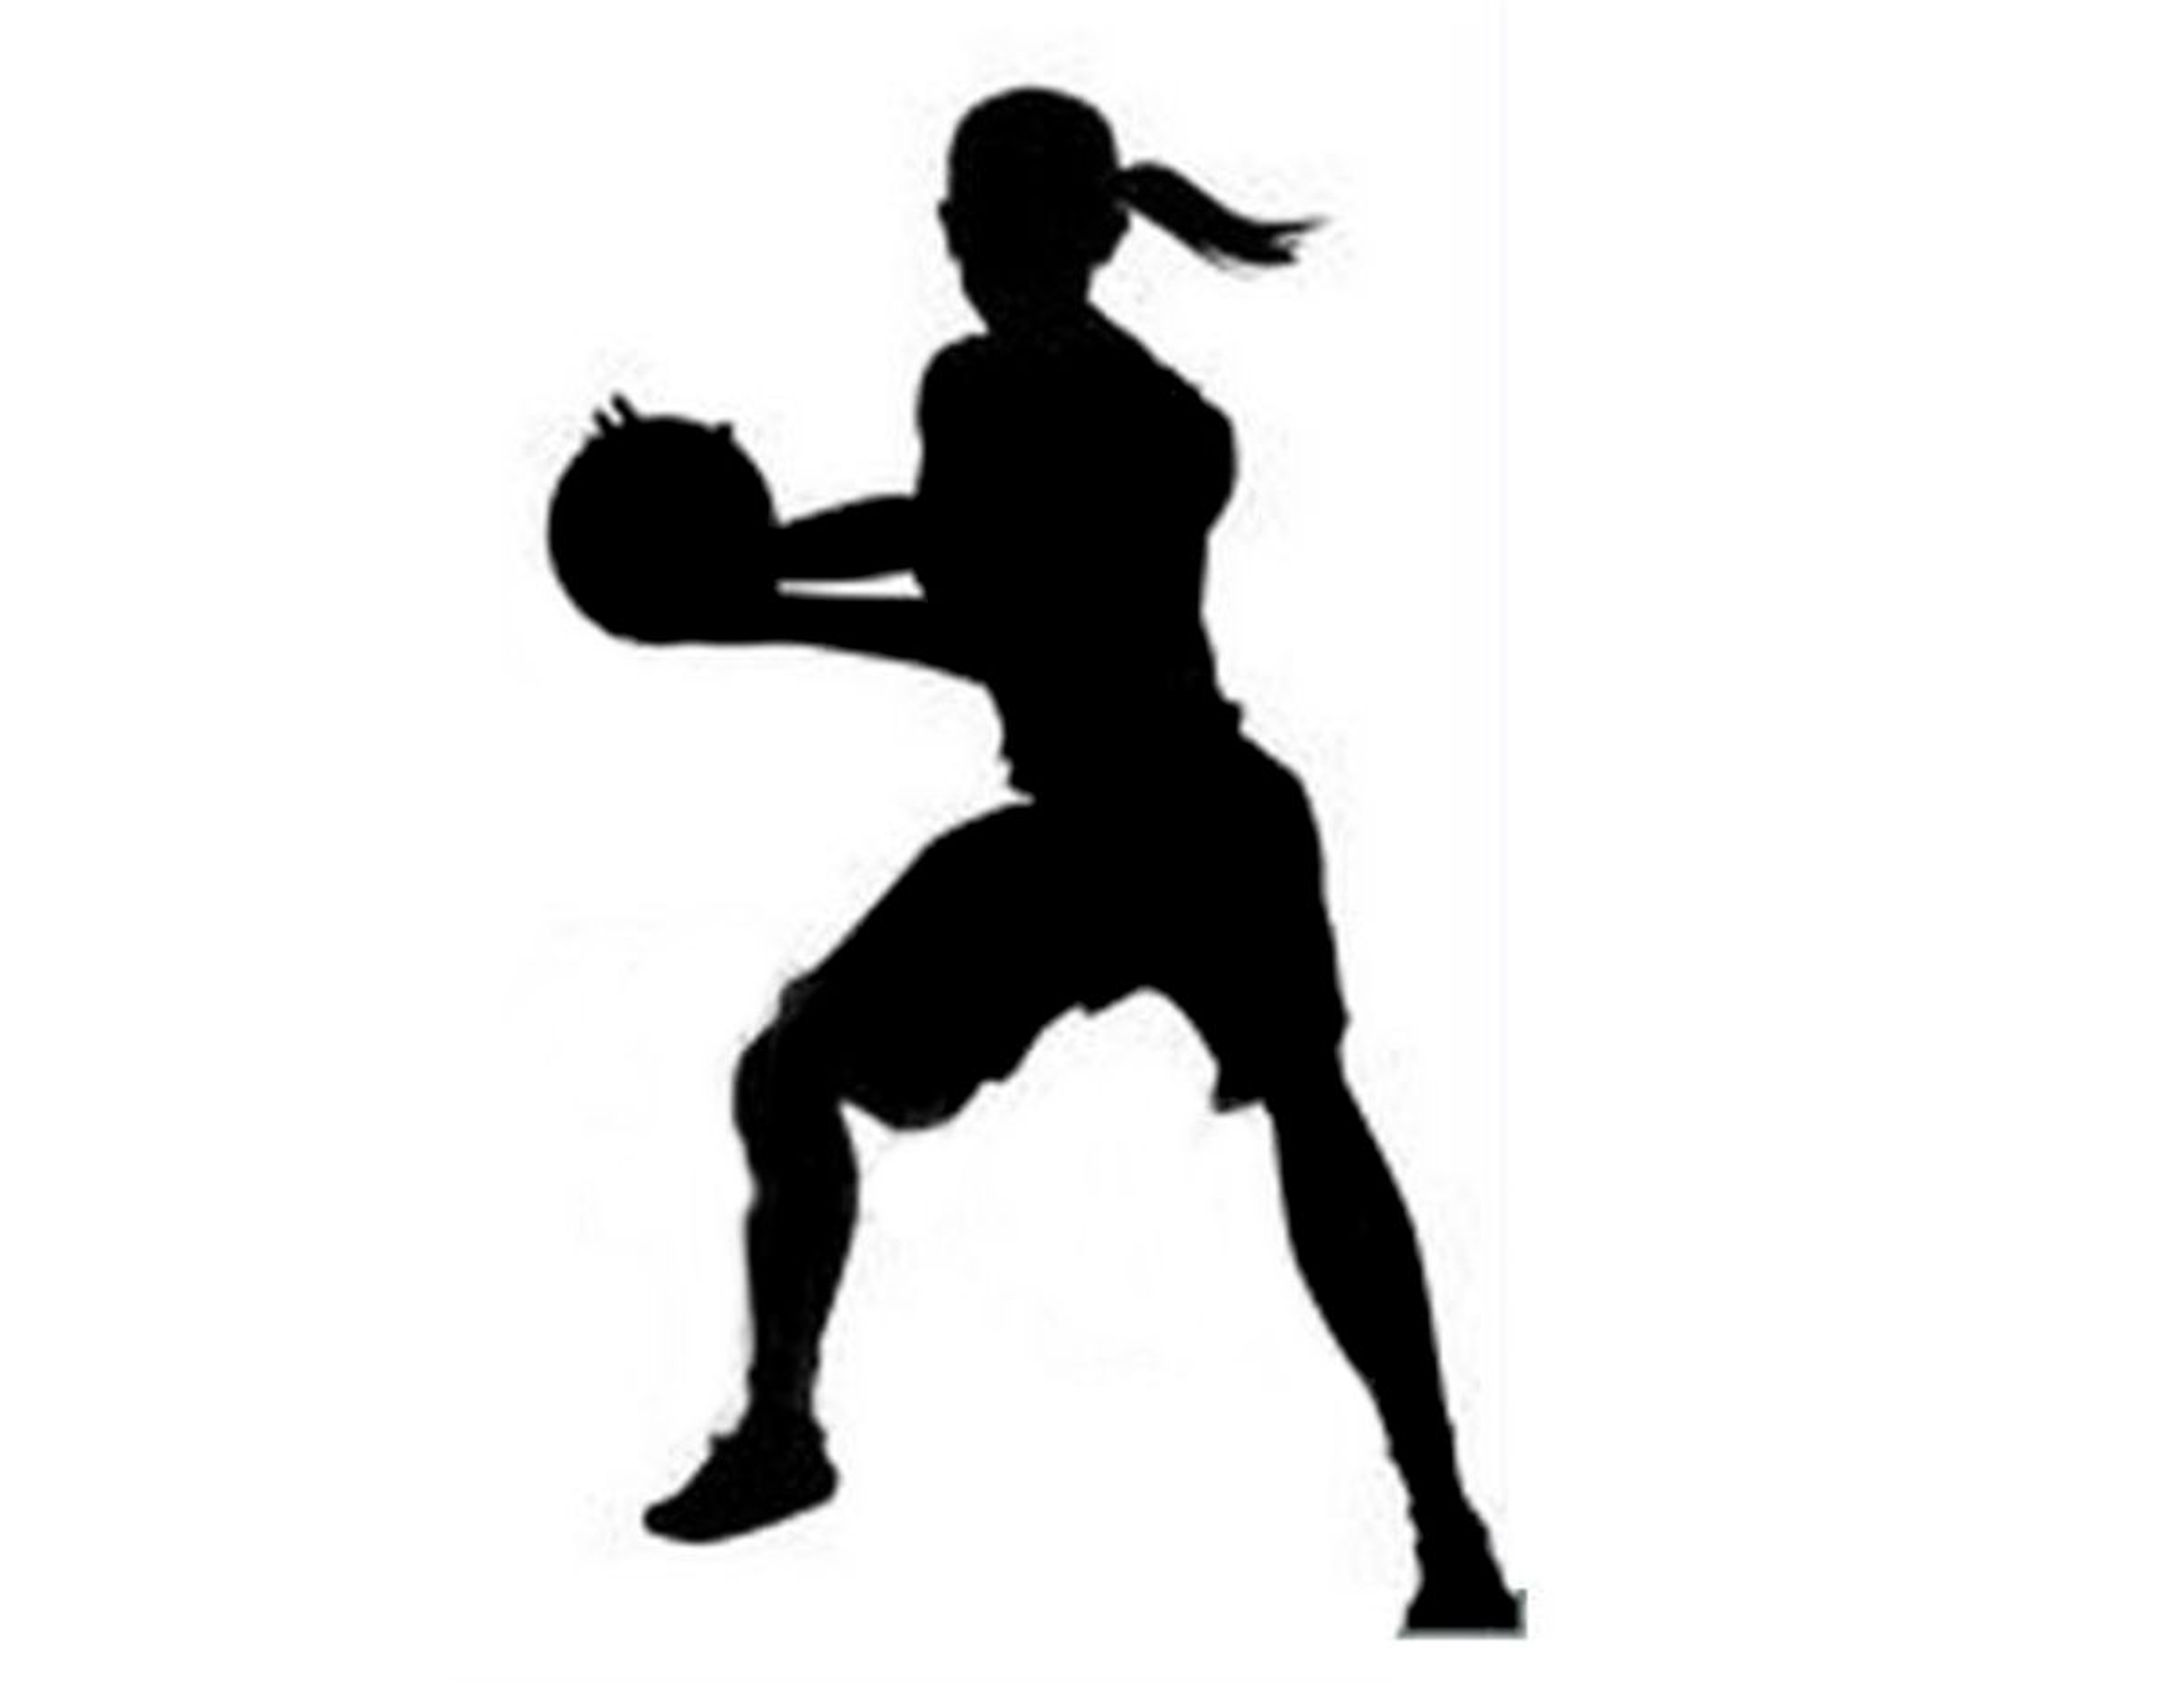 Girl Basketball Player Silhouette Cityyearchicagocivicengagement Painting 2 Indoor Gym Weightroom Mural Girl Silhouette Basketball Painting Silhouette